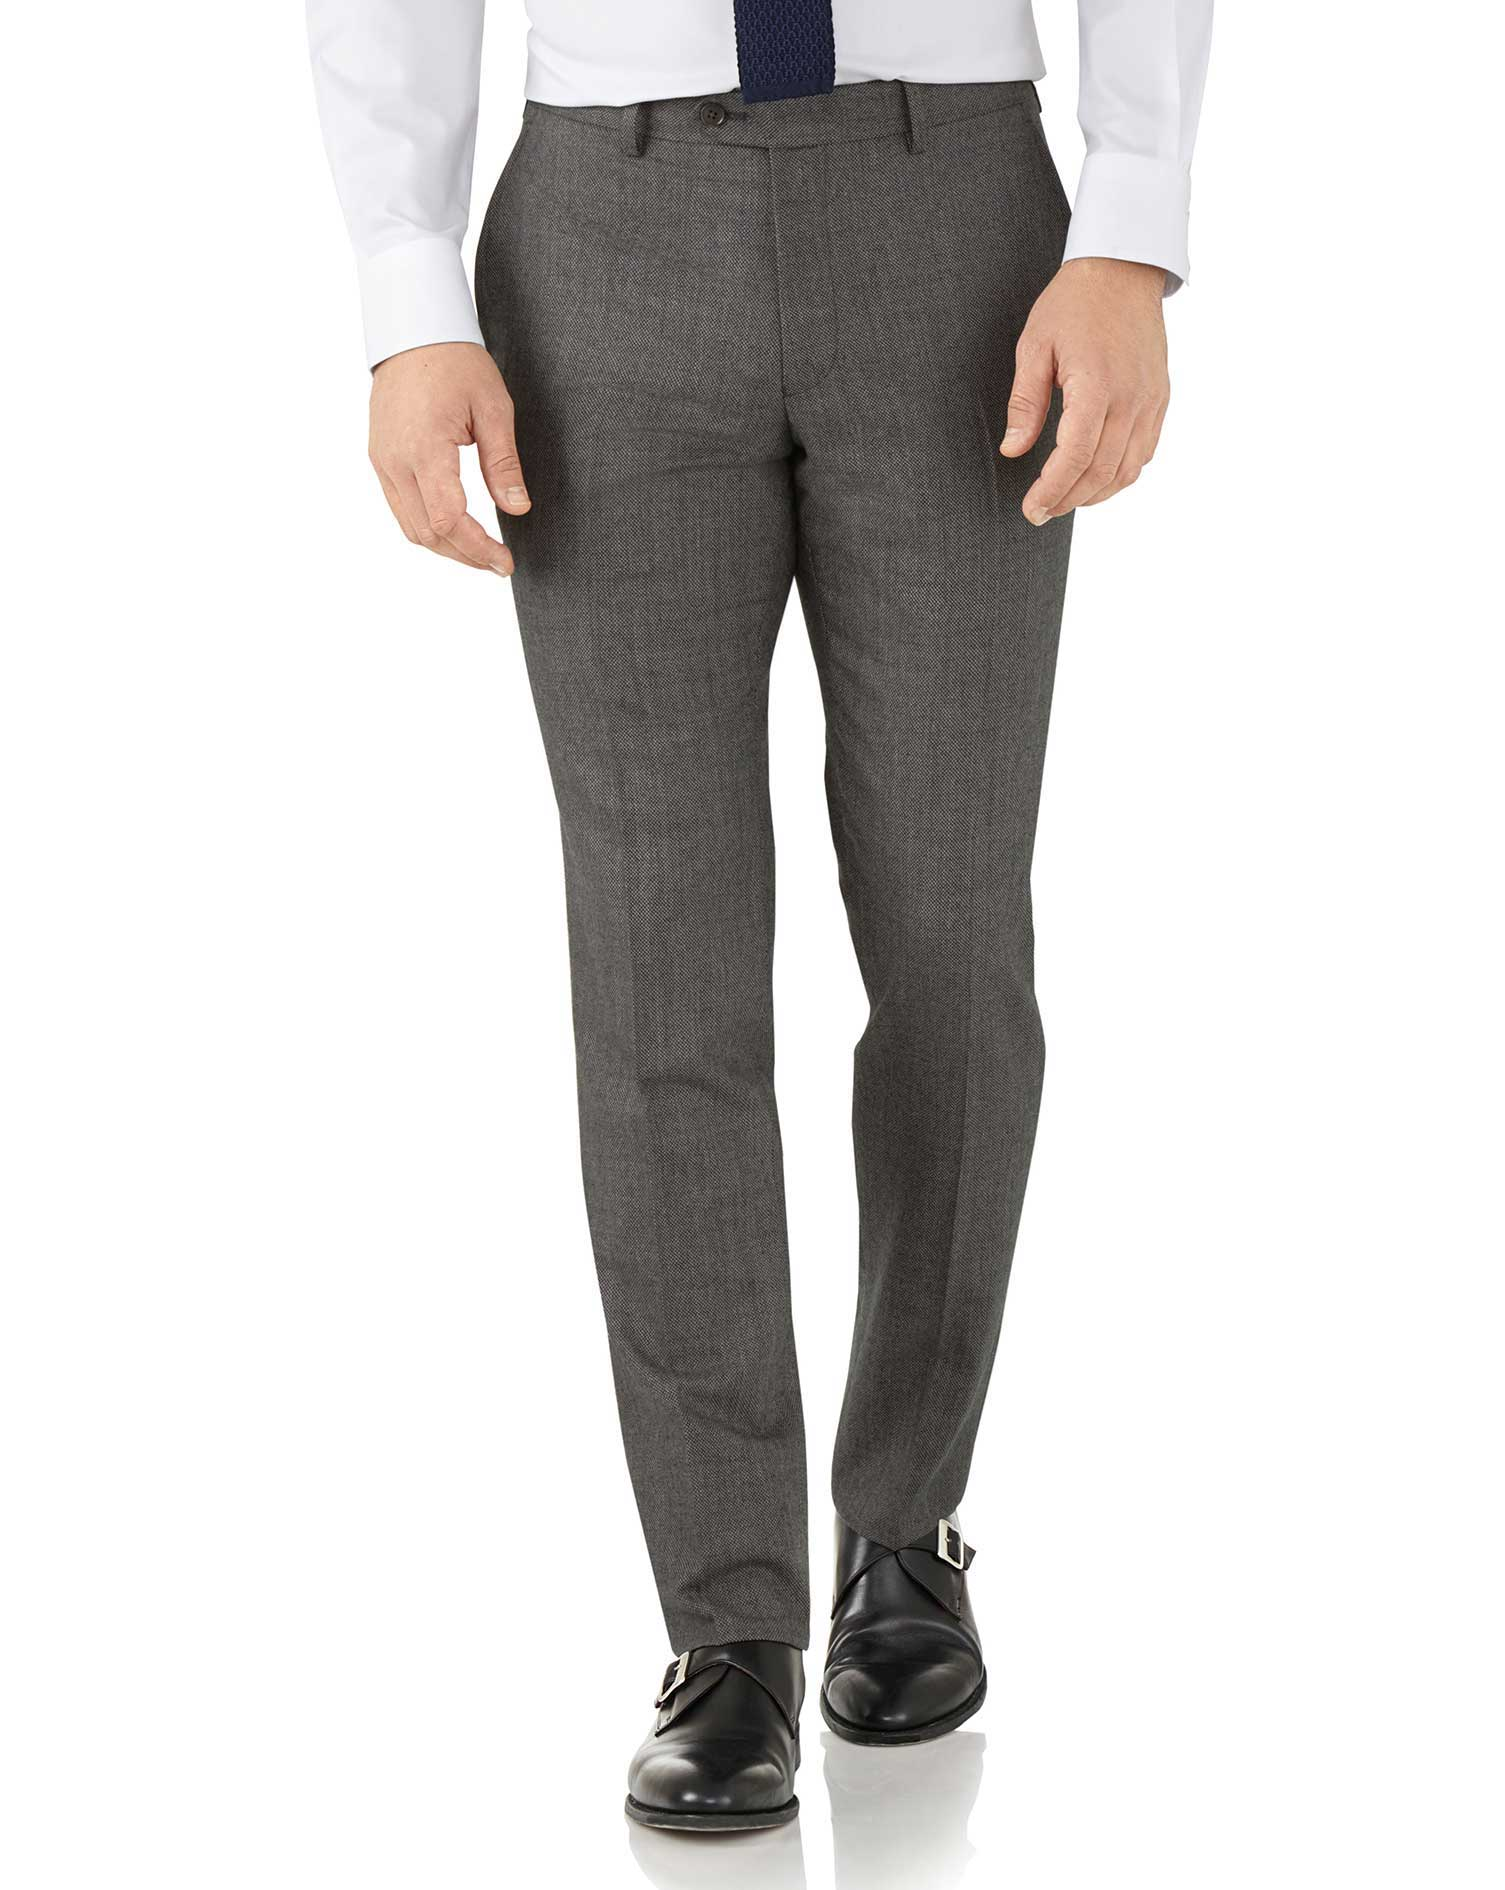 Silver Slim Fit Flannel Business Suit Trousers Size W38 L34 by Charles Tyrwhitt